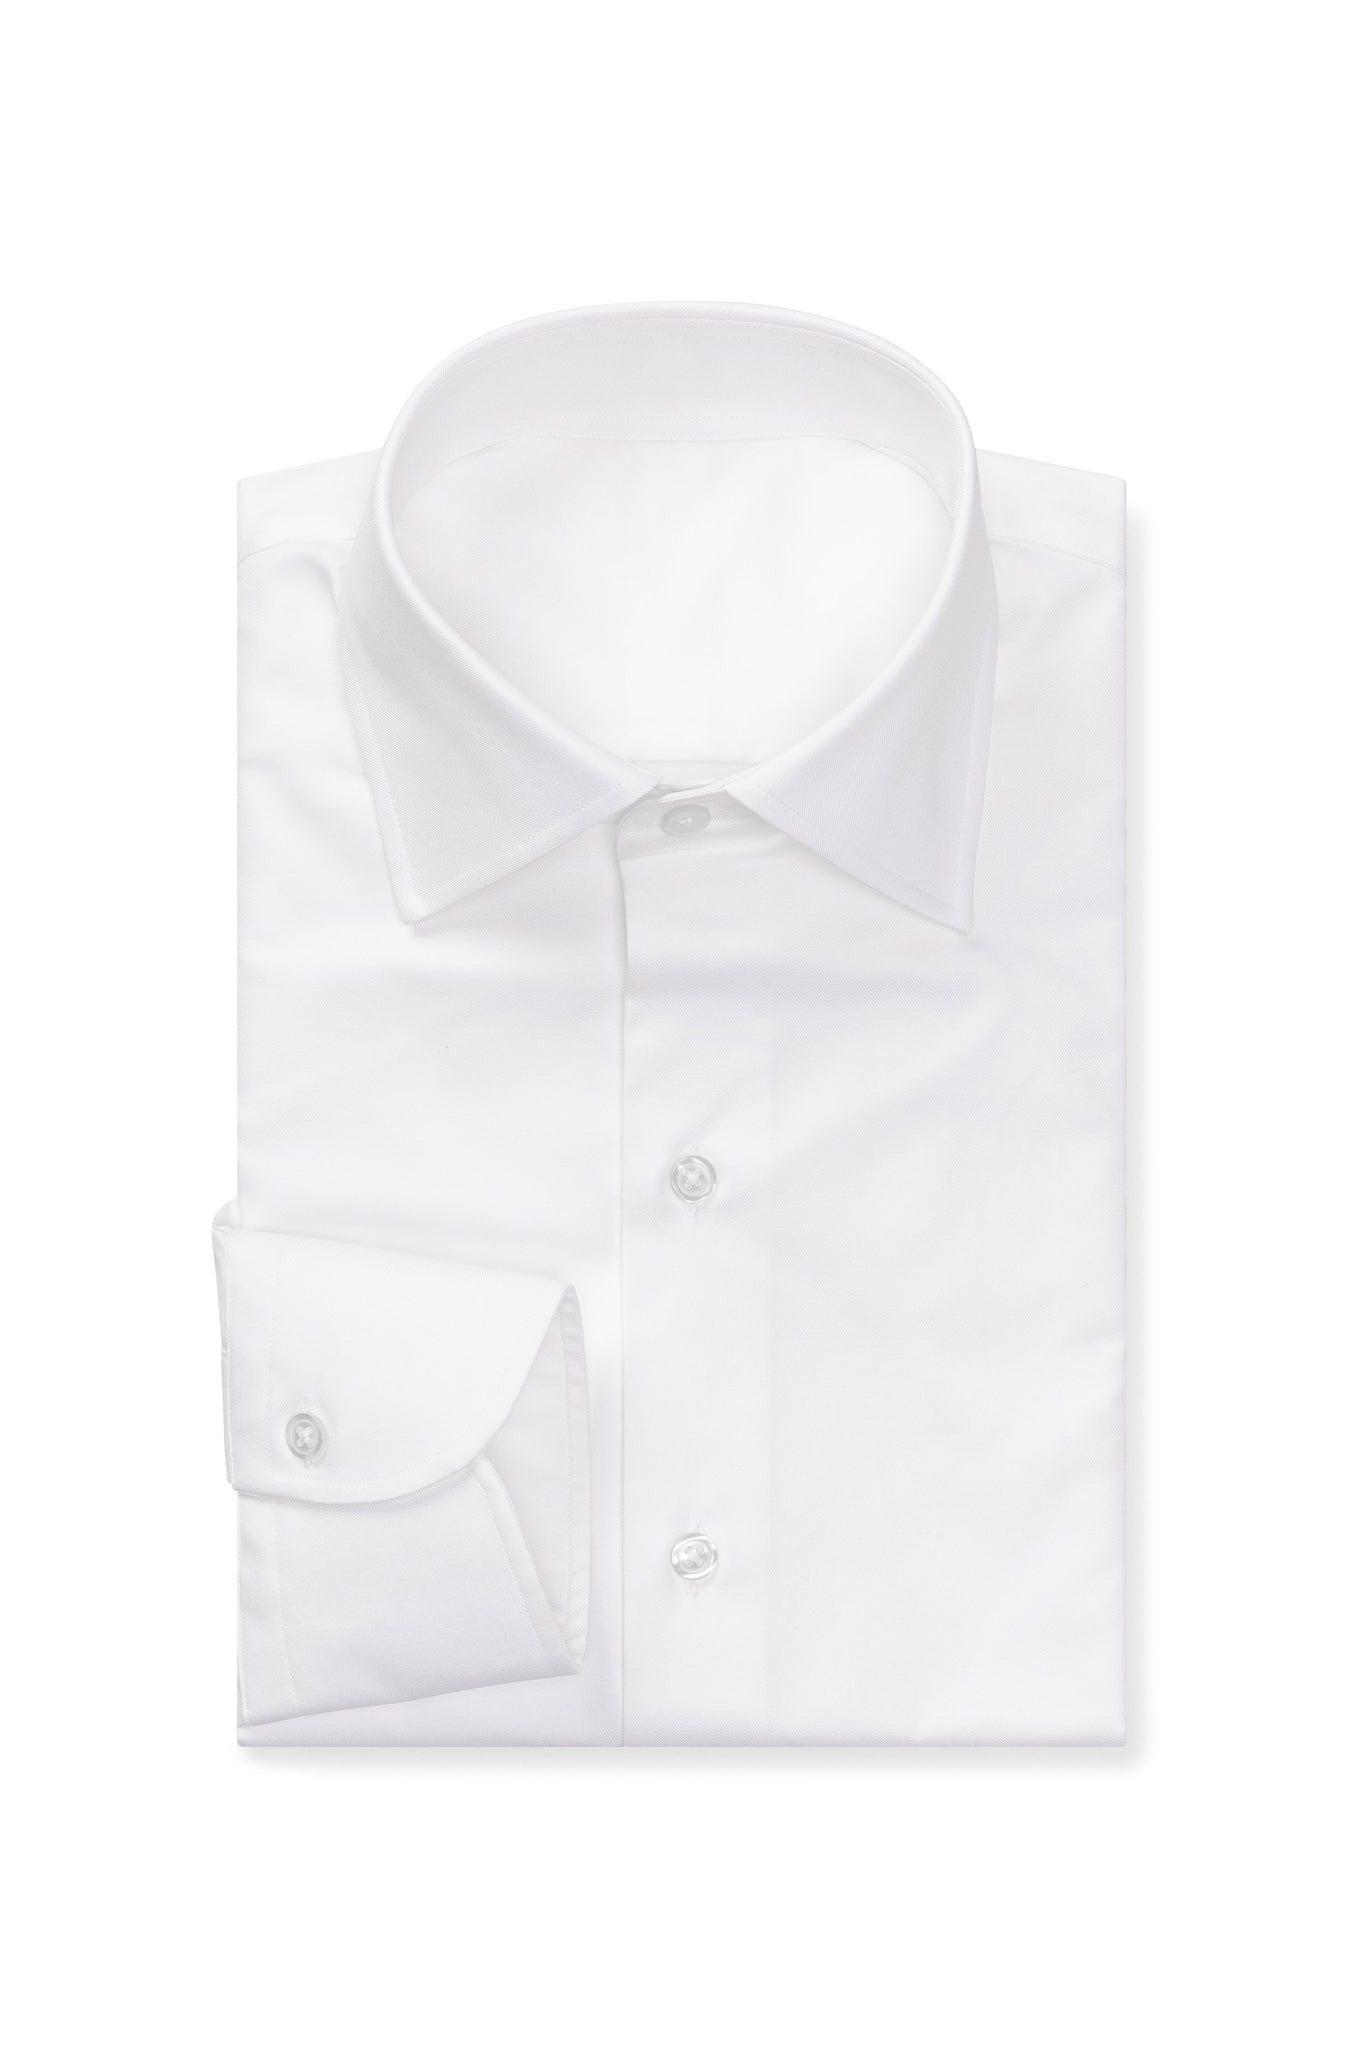 Classic White Twill Made to Order Shirt